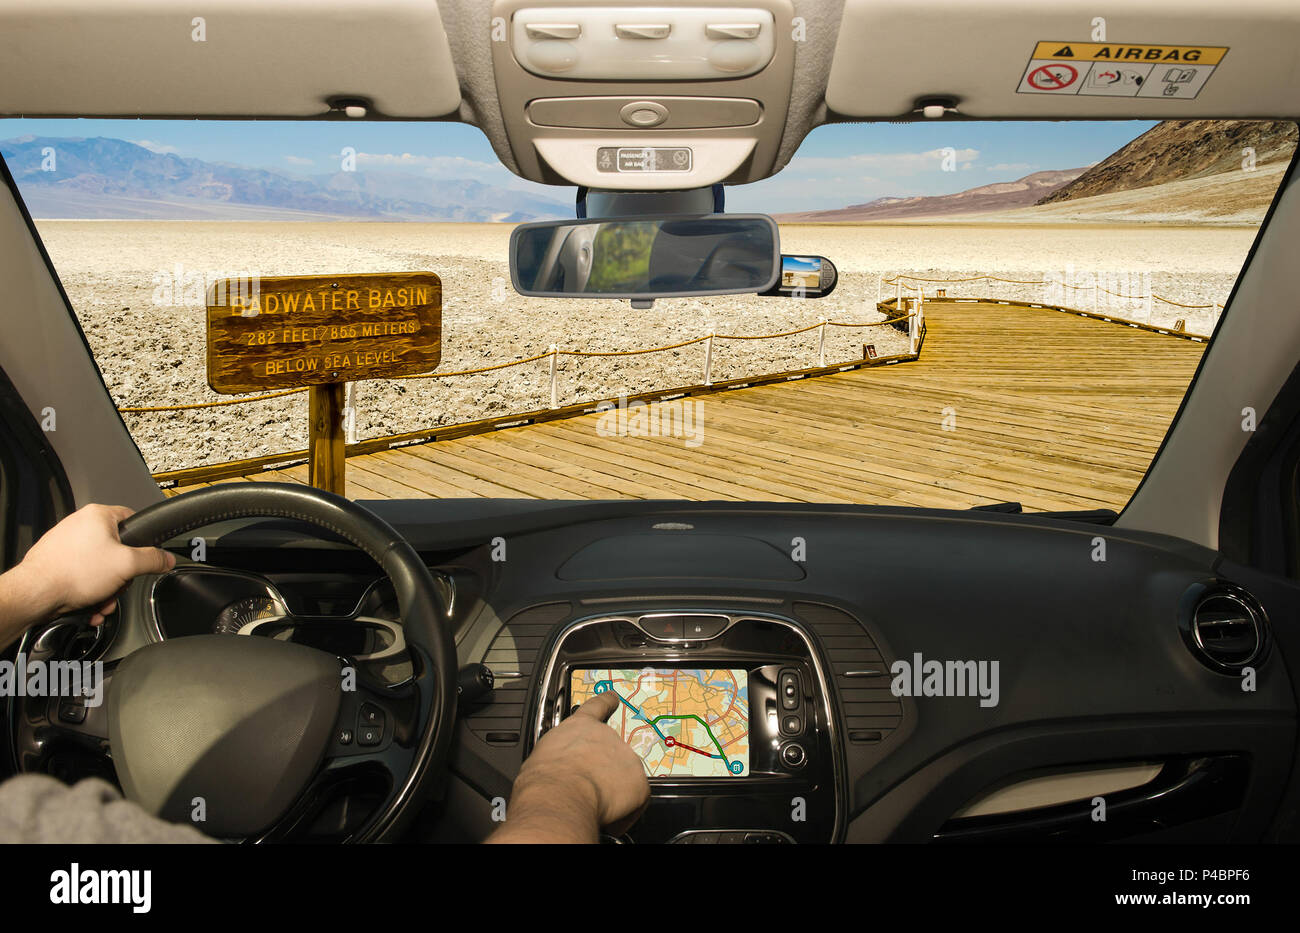 Driving a car while using the touch screen of a GPS navigation system in Badwater Basin, the lowest elevation point in USA, Death Valley National park - Stock Image